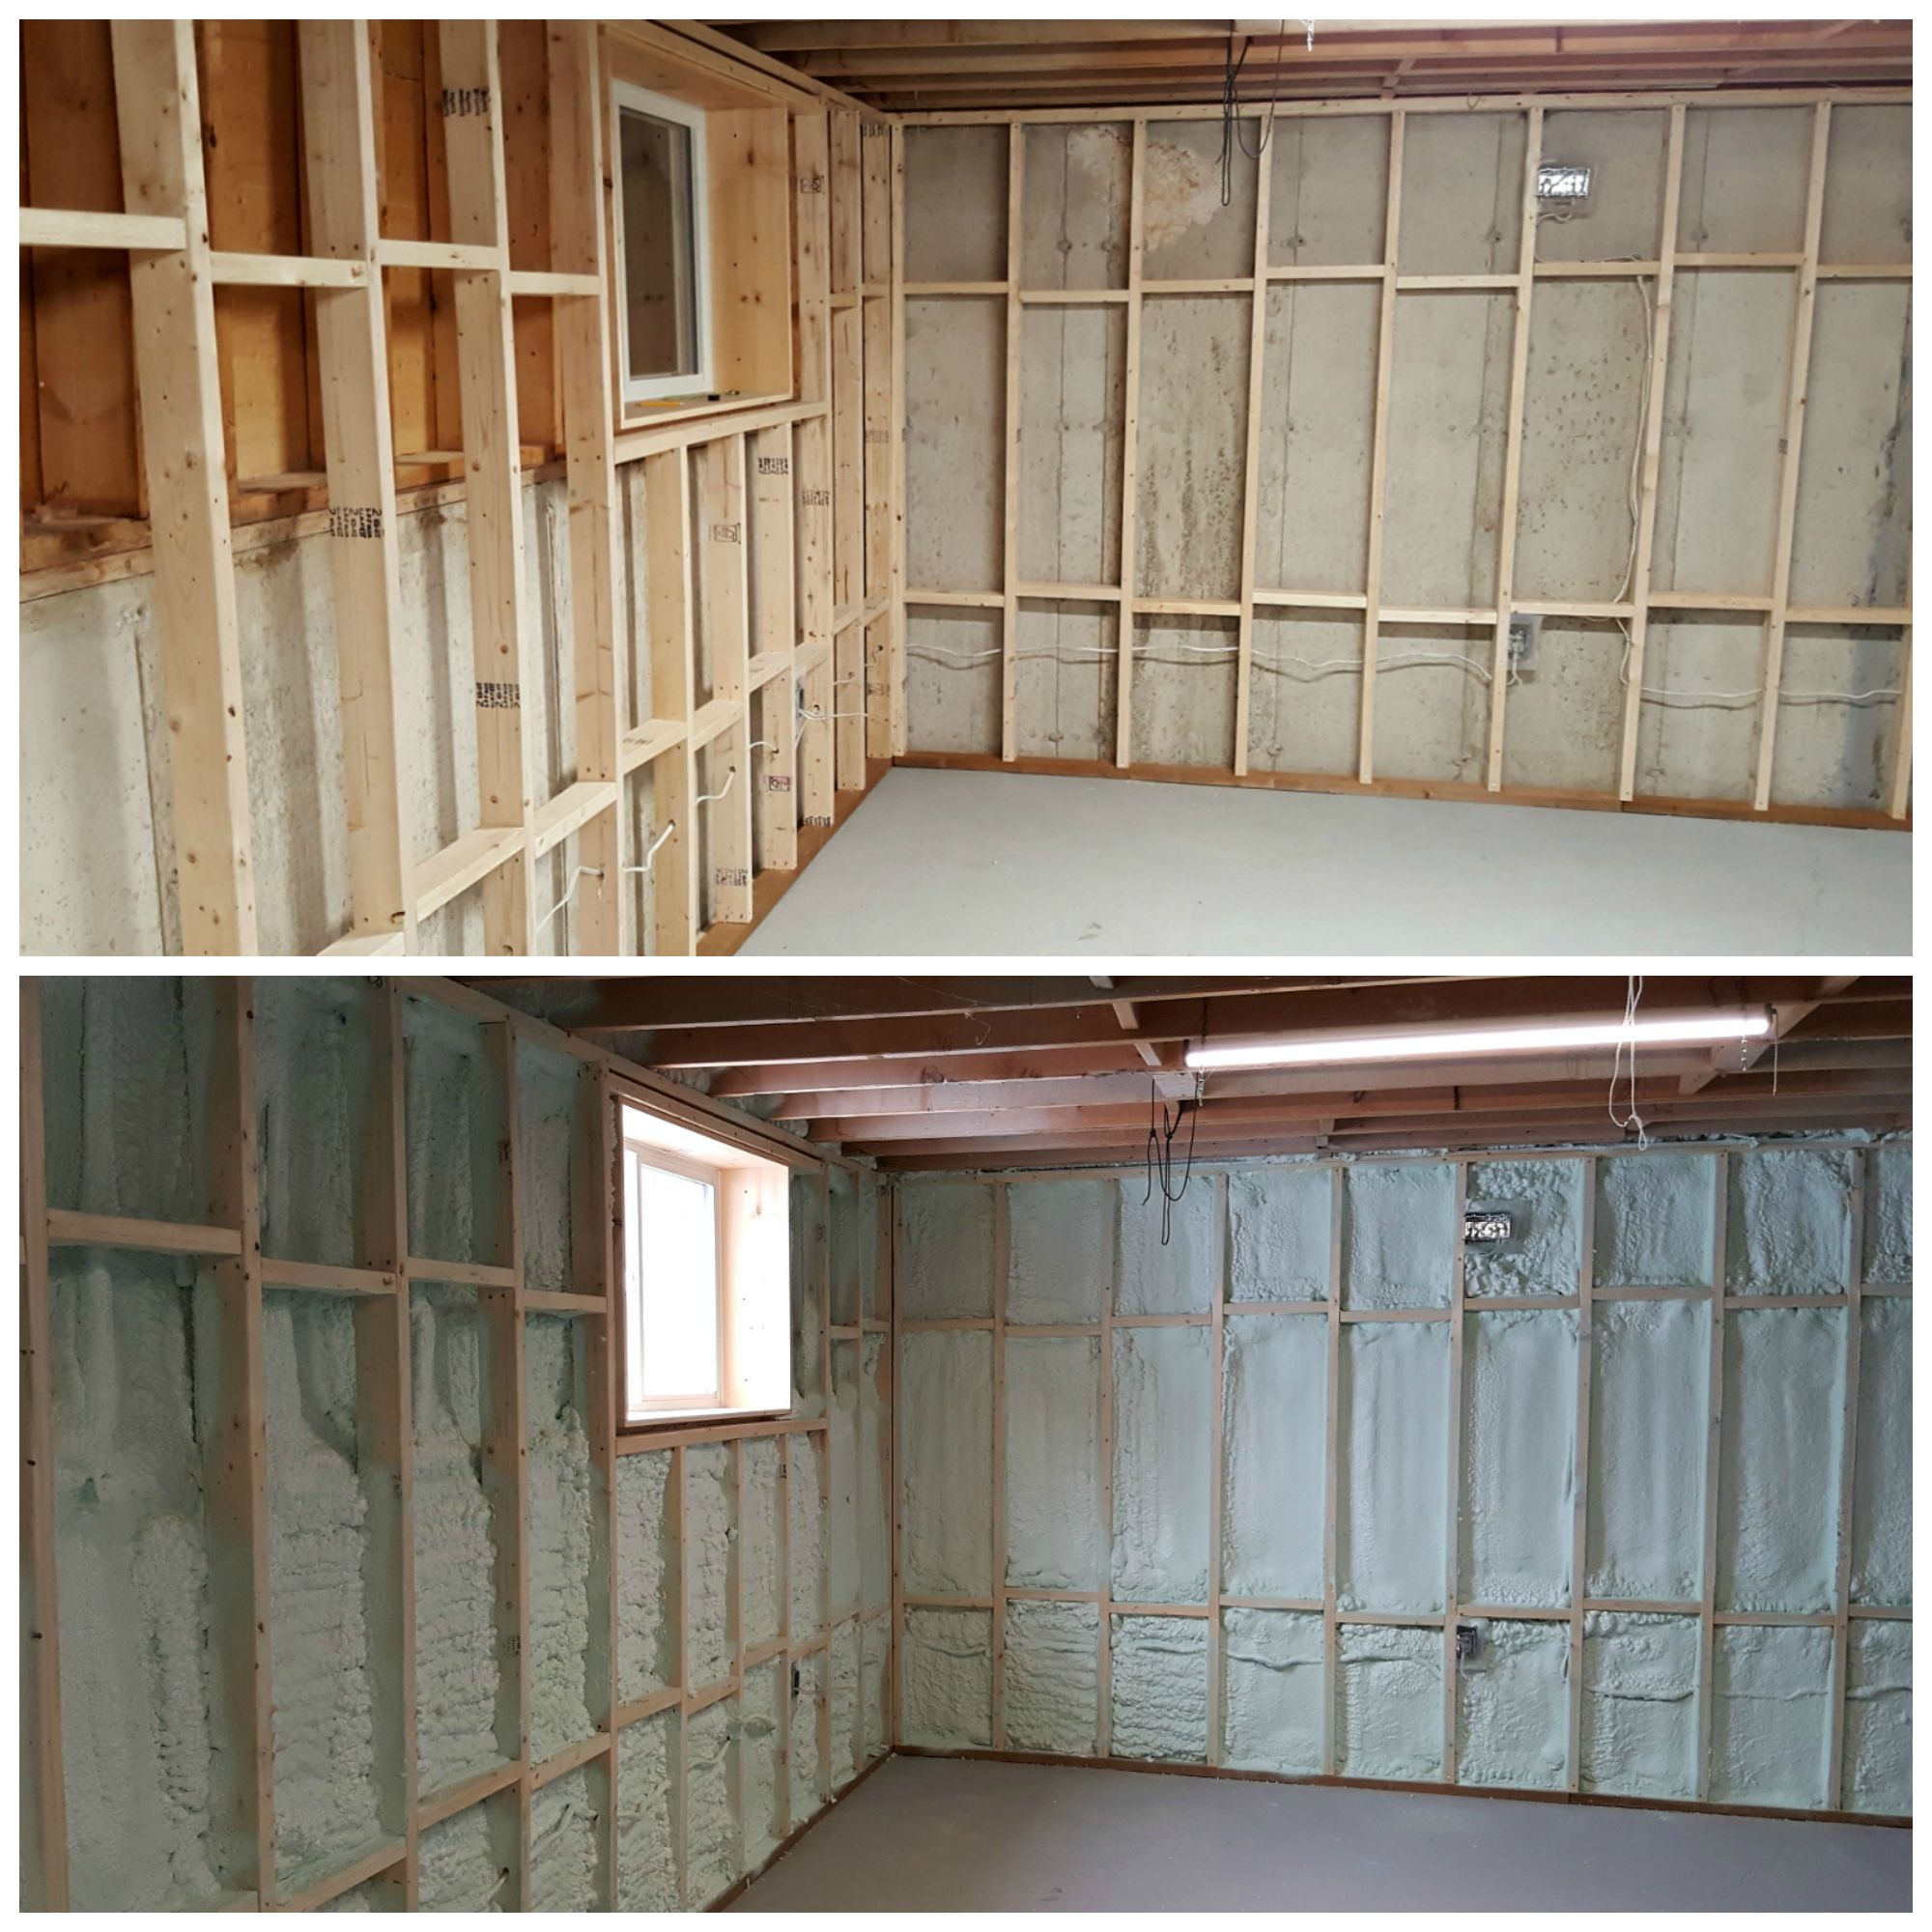 Basement Framing And Spray Foam Insulation Basement Walls Basement Insulation Spray Foam Insulation